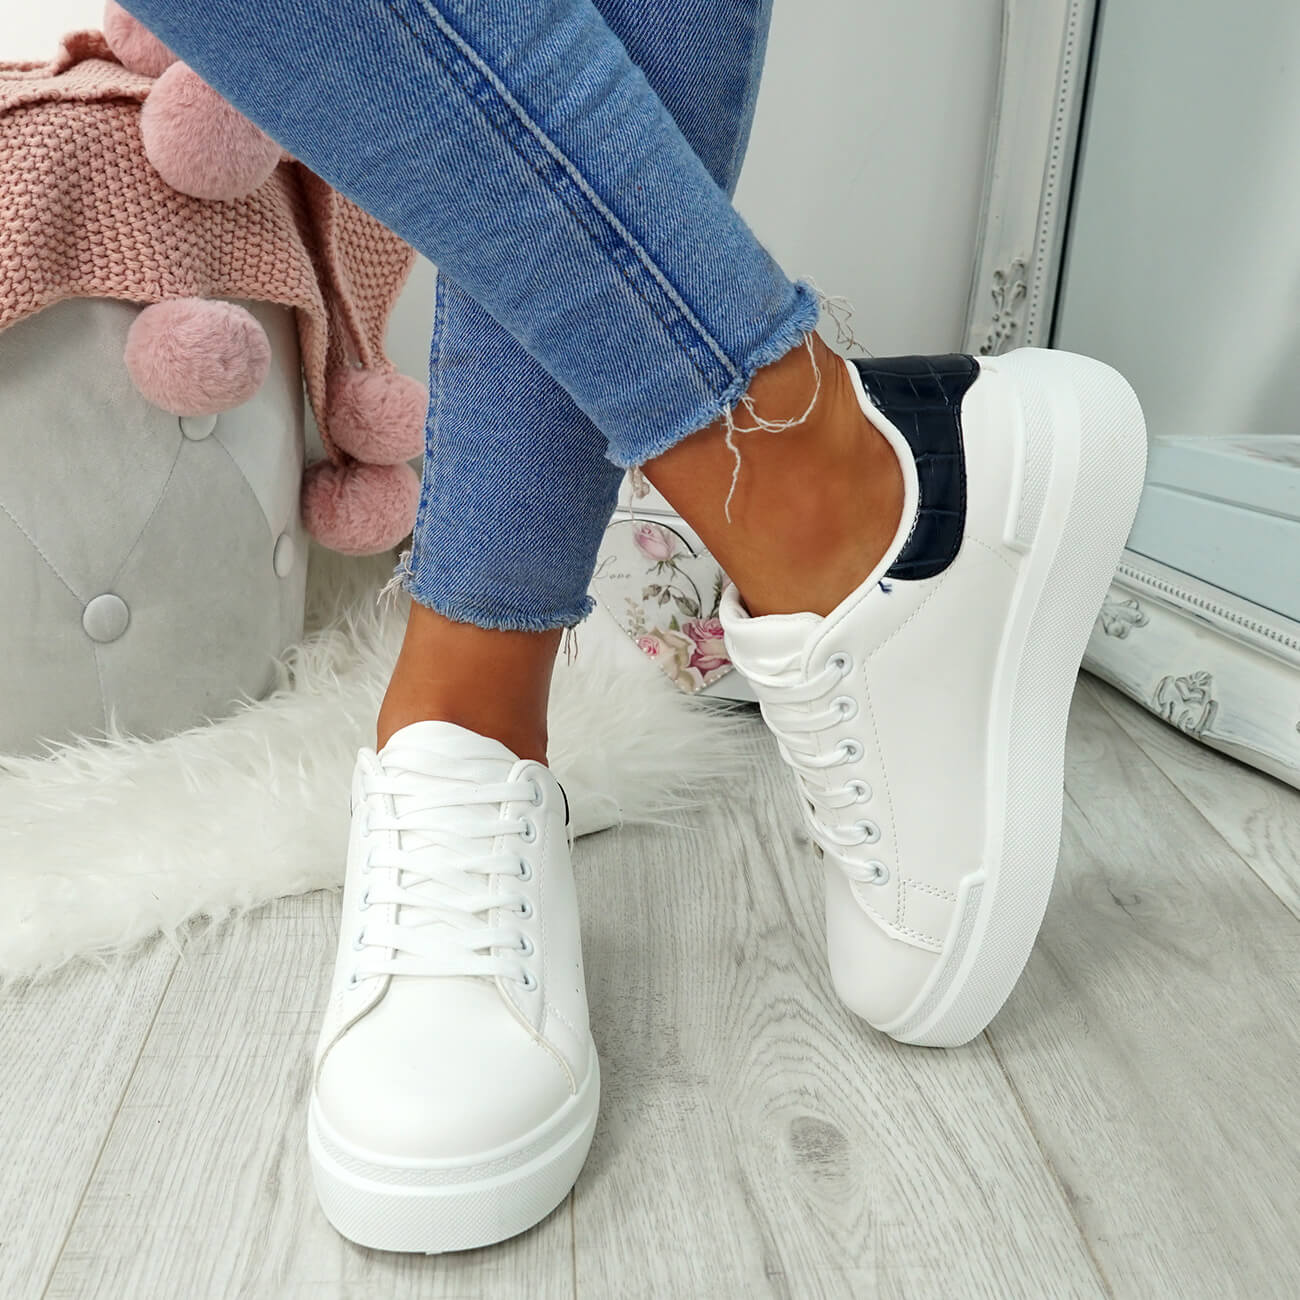 WOMENS-LADIES-LACE-UP-PLIMSOLL-SNEAKERS-CROC-SNAKE-TRAINERS-CASUAL-SHOES-SIZE thumbnail 37